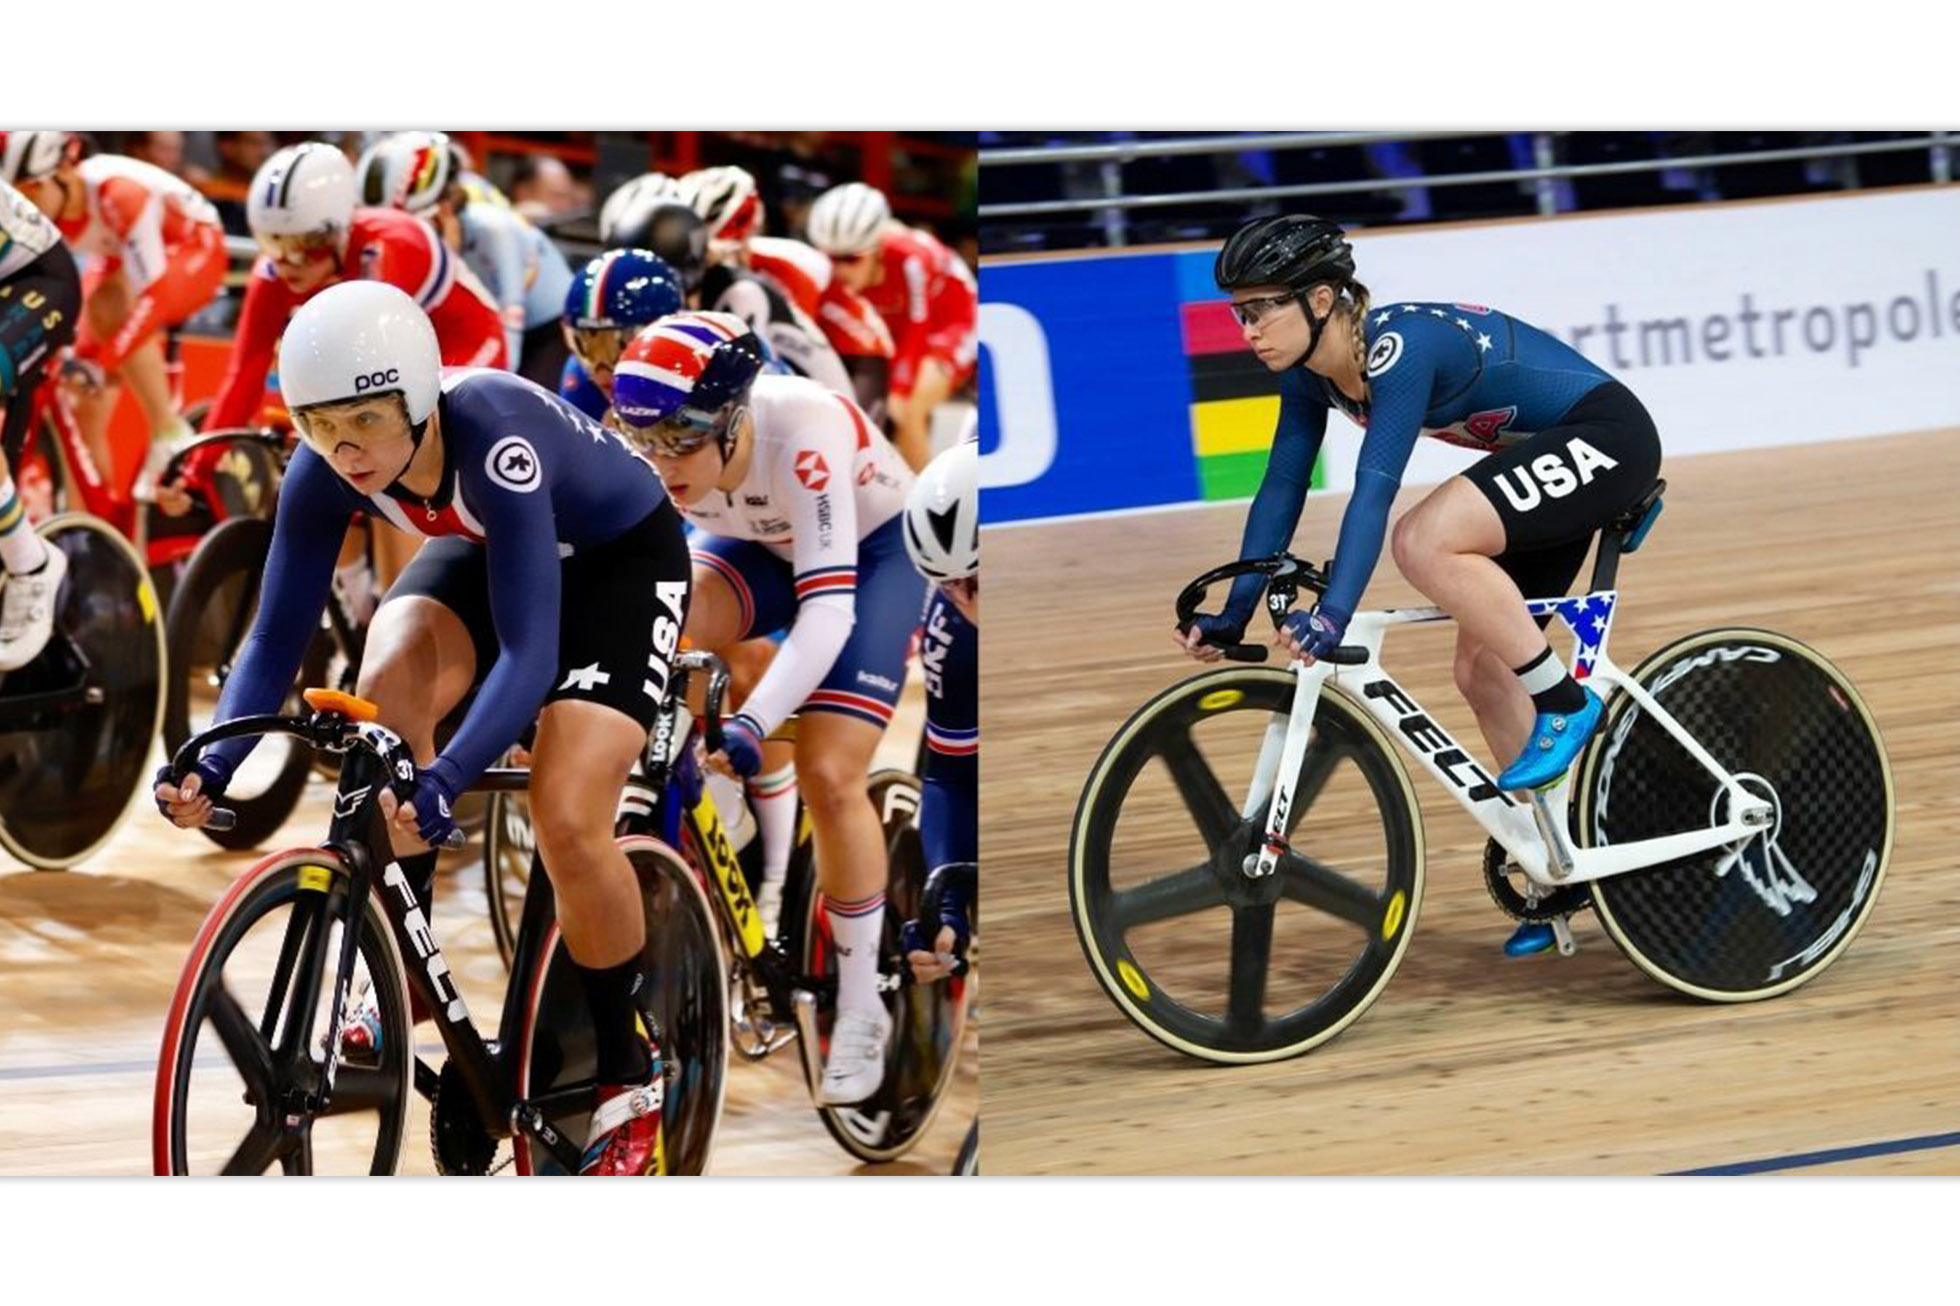 JASTRAB AND RYAN RECEIVE GRANTS FOR OLYMPIC EFFORTS